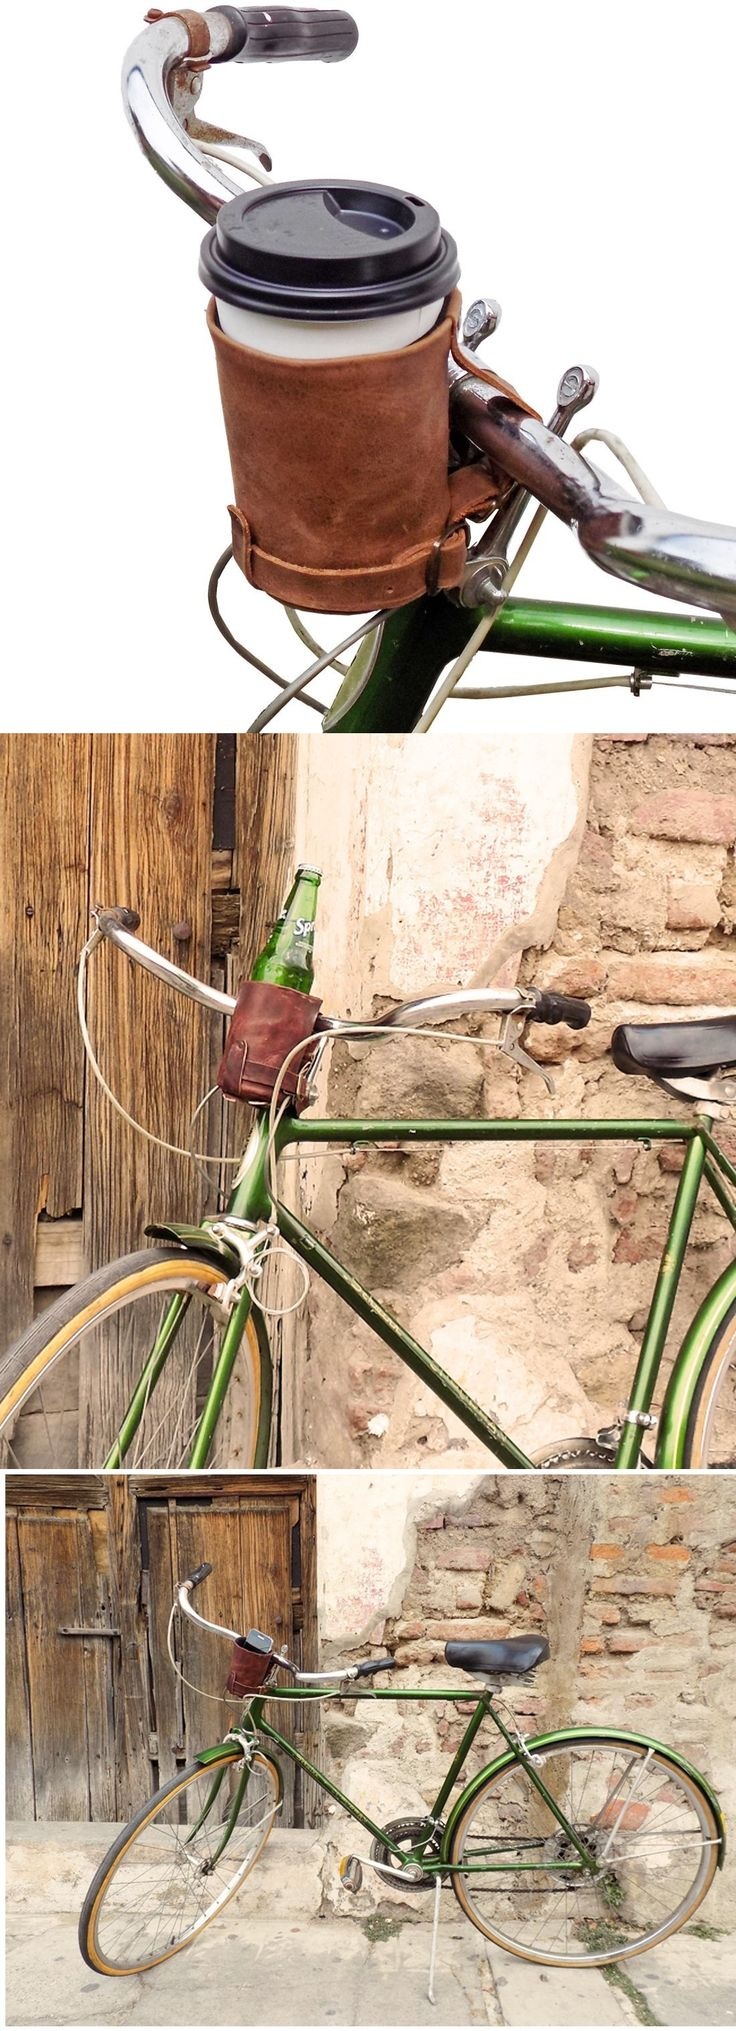 cruzy-kuzy-leather-bike-cup-holder-handmade